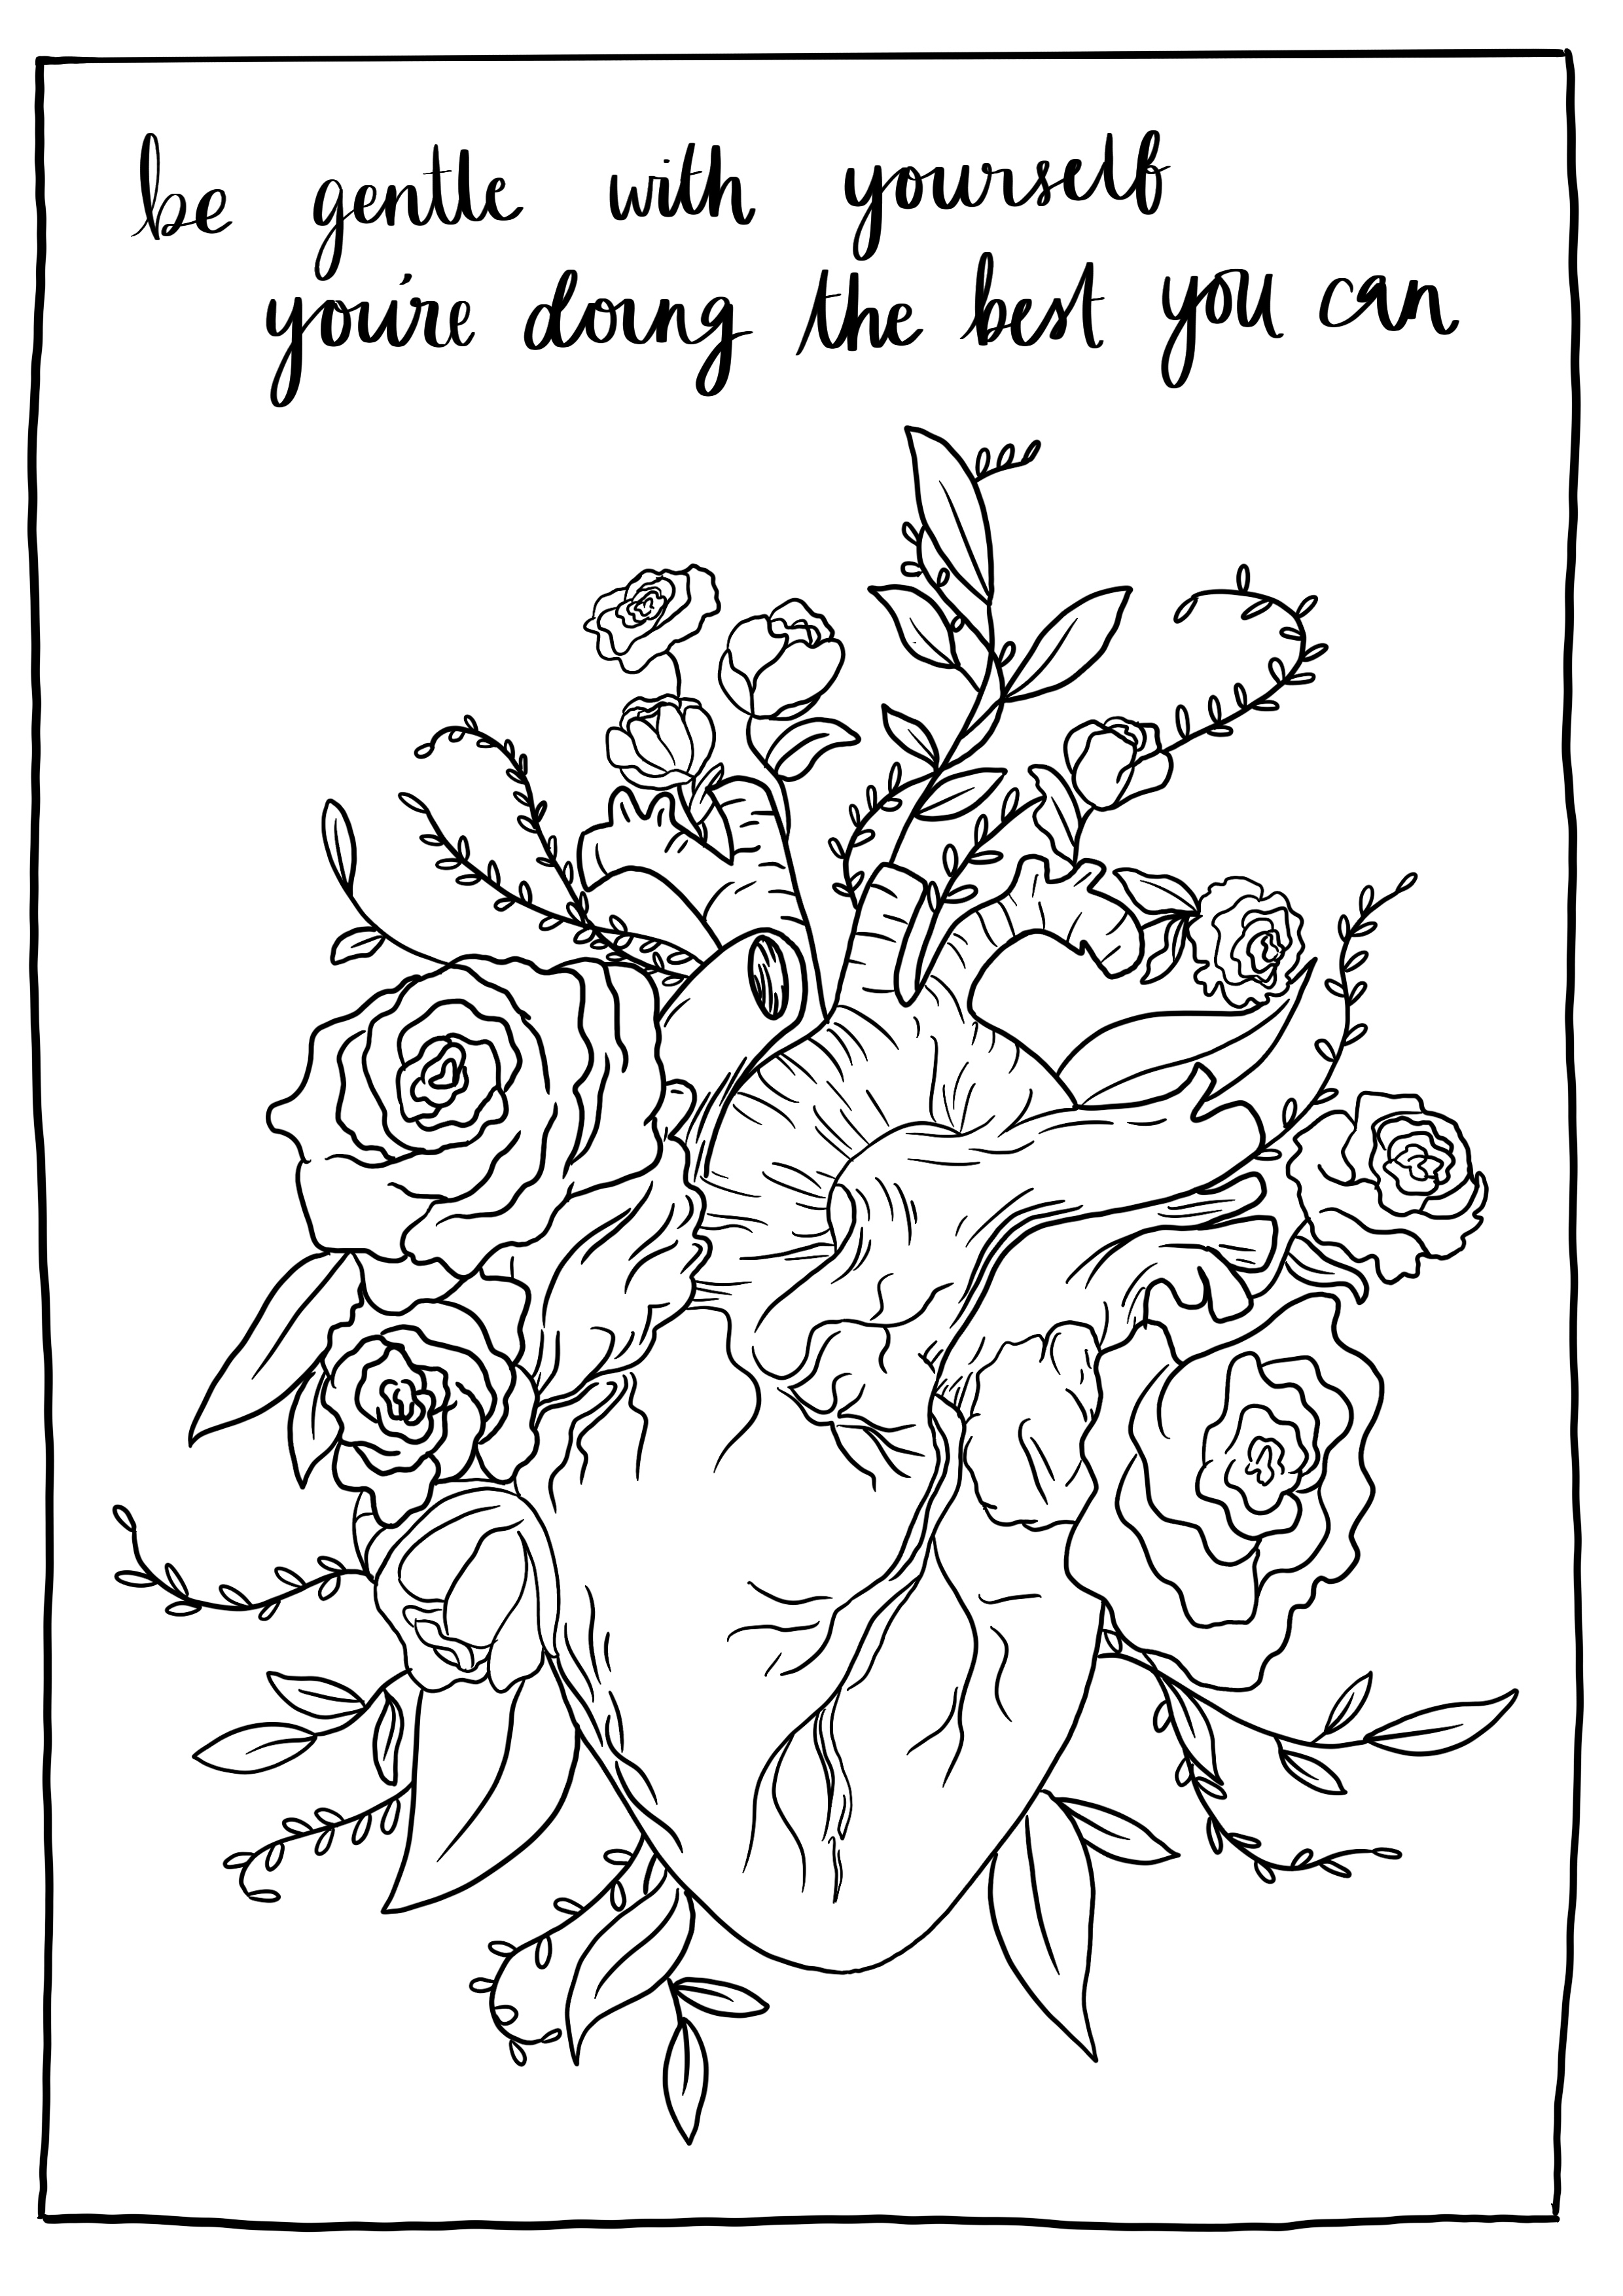 Mental Health Pages Coloring Pages